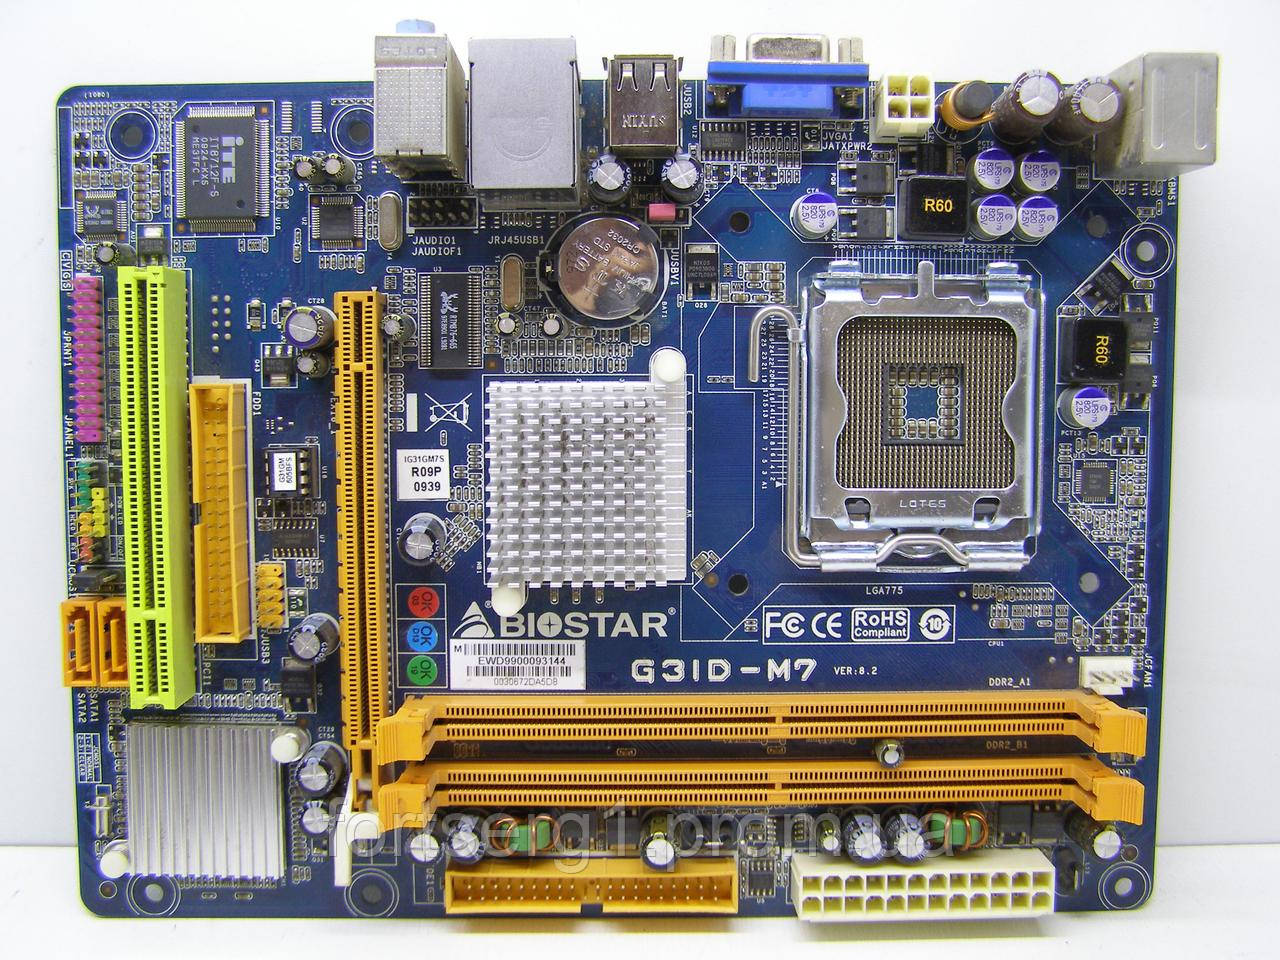 G3ID-M7 MOTHERBOARD LAN DRIVER FOR WINDOWS 8